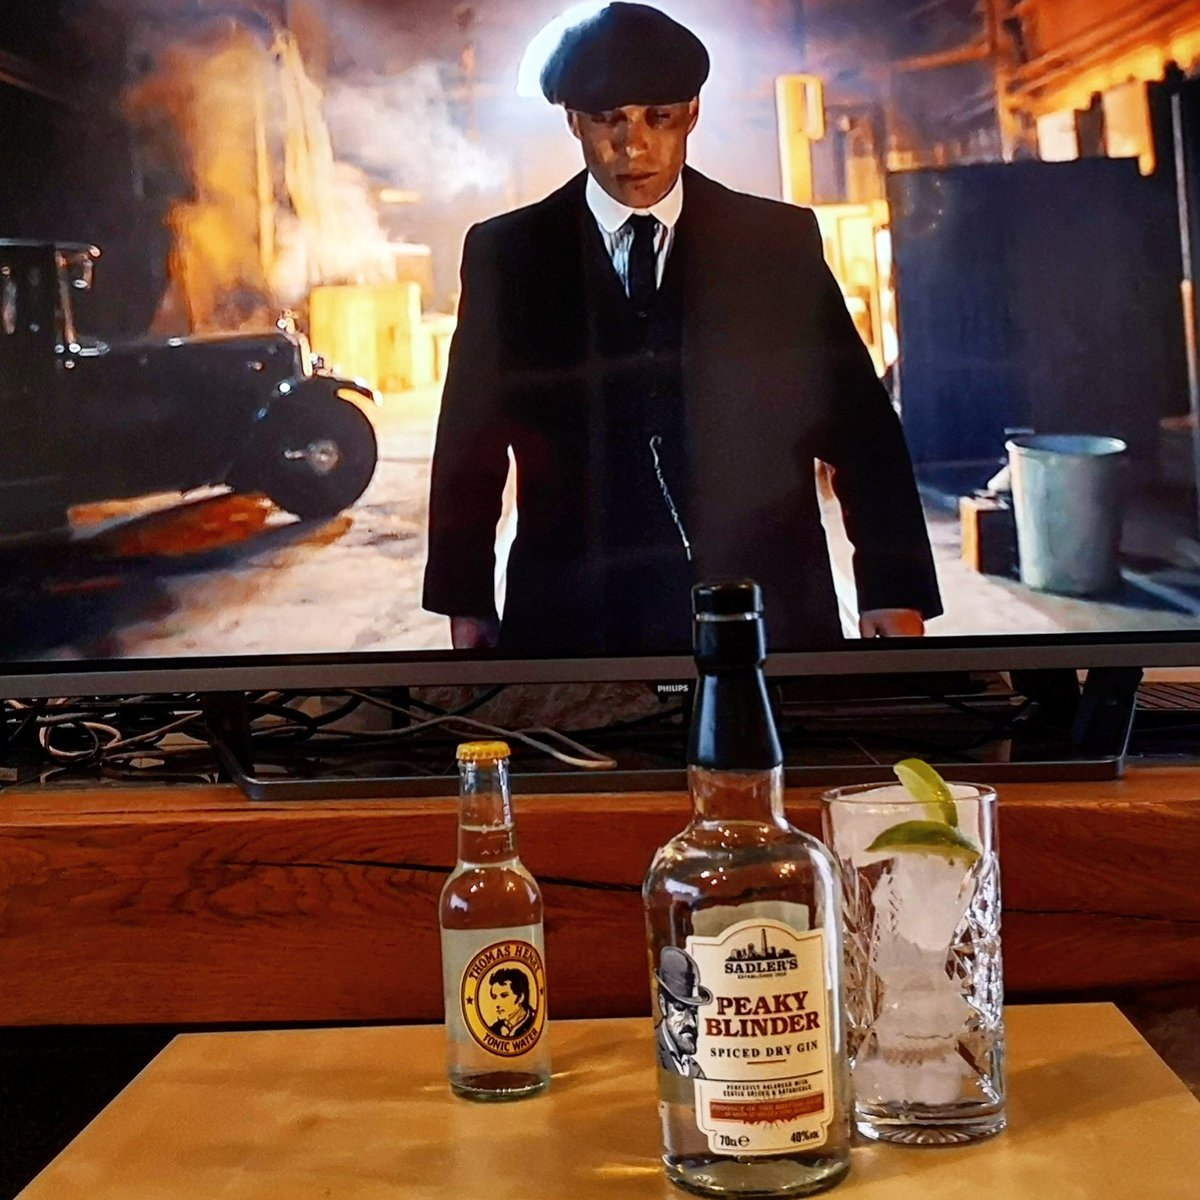 By Order of the F*cking Peaky  Blinders!  Distilled for the eradication of seemingly incurable sadness.  Cheers to you all you bloody m*ther f*ckers! !  #ginurway #ginfans #peakyblinder #GinUrWayMedals #ginandtonic @peakyblindersofficial @shelby_public_house pic.twitter.com/kLddHdEk5o